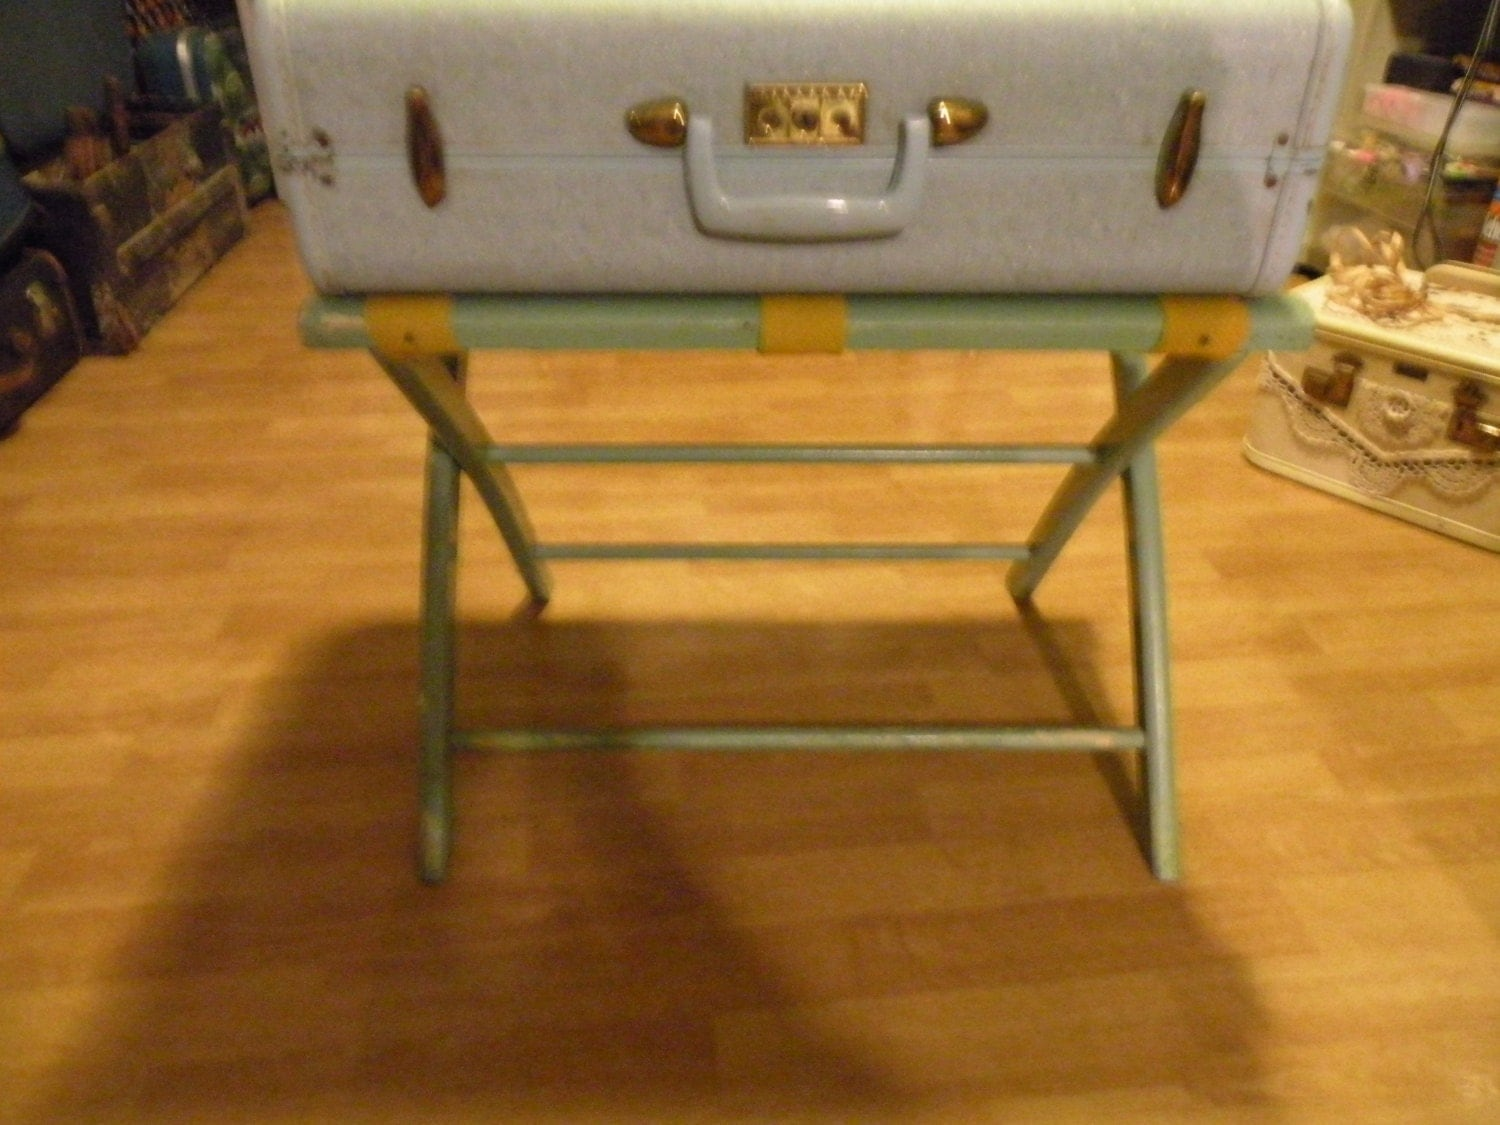 Valise rack porte valise valise hotel stand pieds de table for Table valise